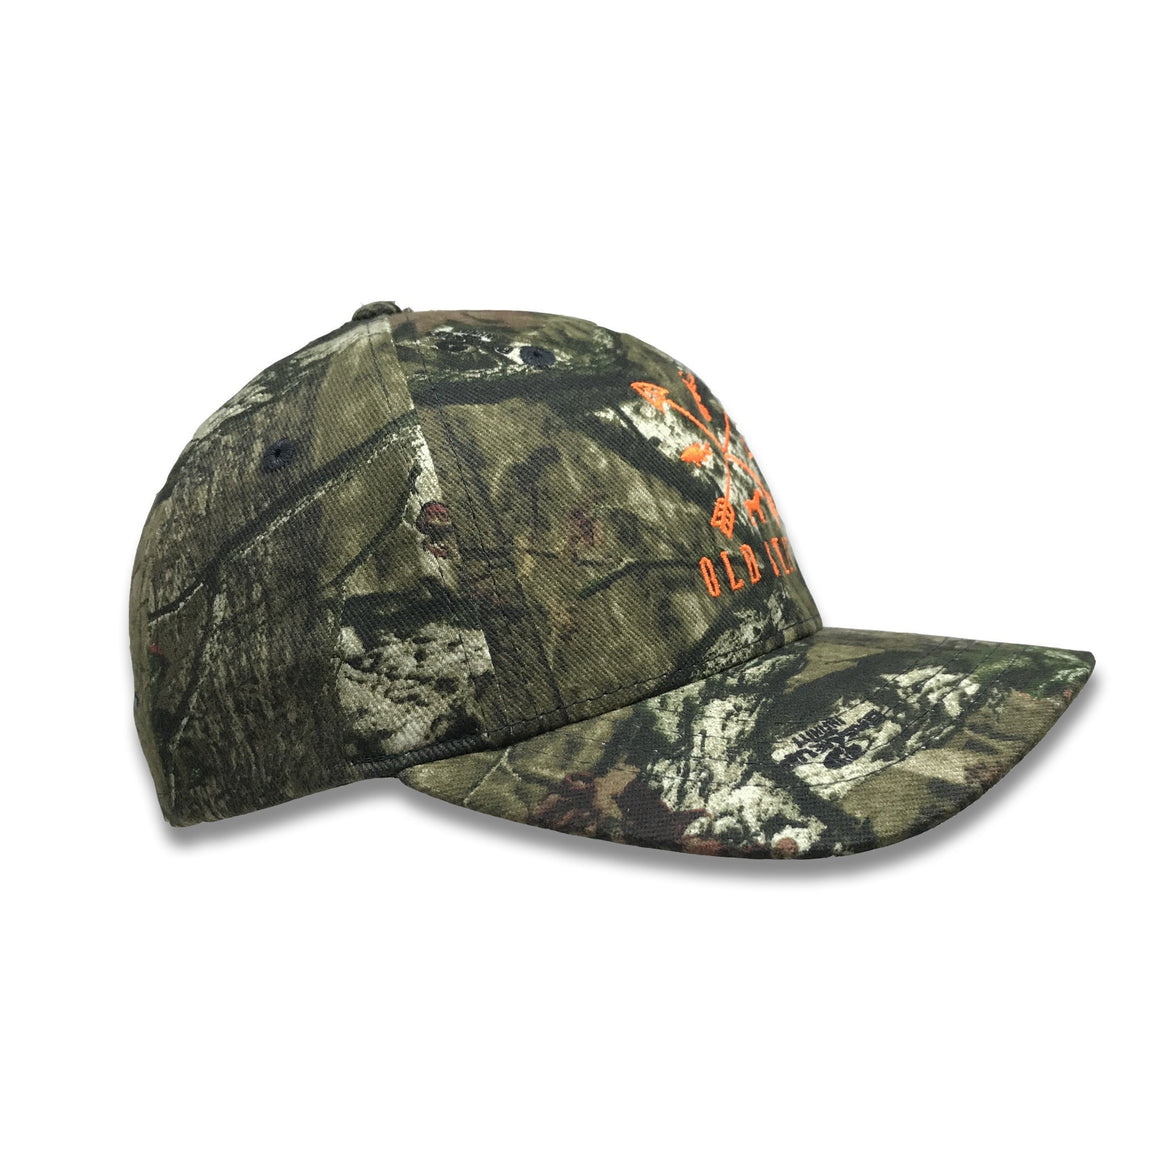 Old State Pride Hats Old State Pride Youth Camo Hat